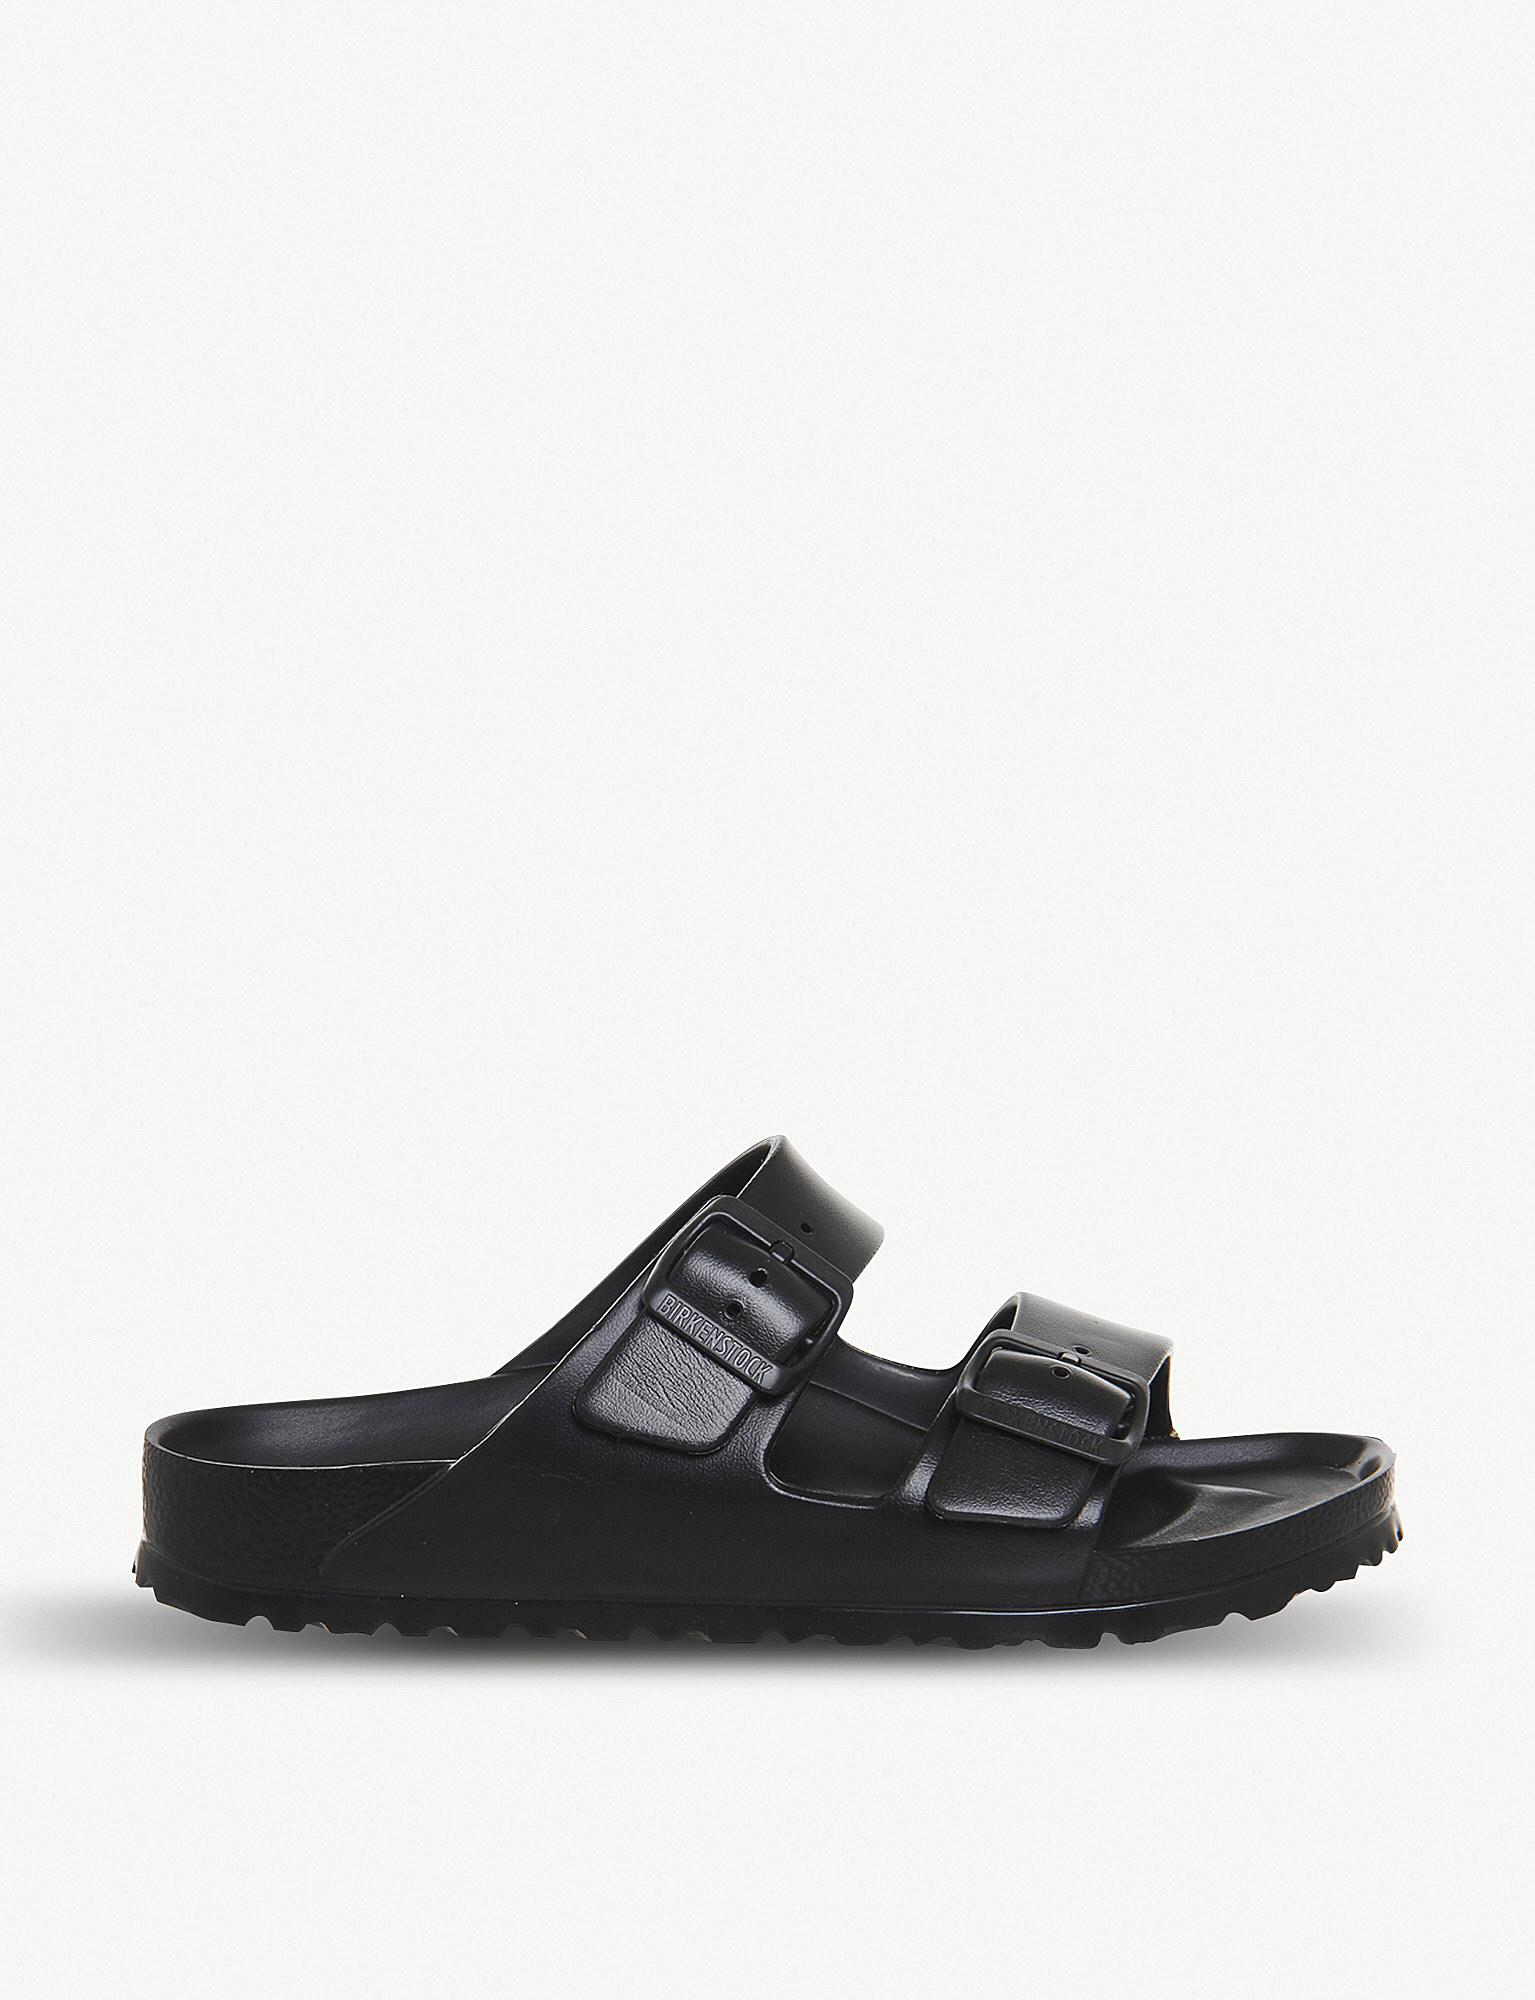 01c9ace5a996 Birkenstock - Black Arizona Faux-leather Sandals for Men - Lyst. View  fullscreen